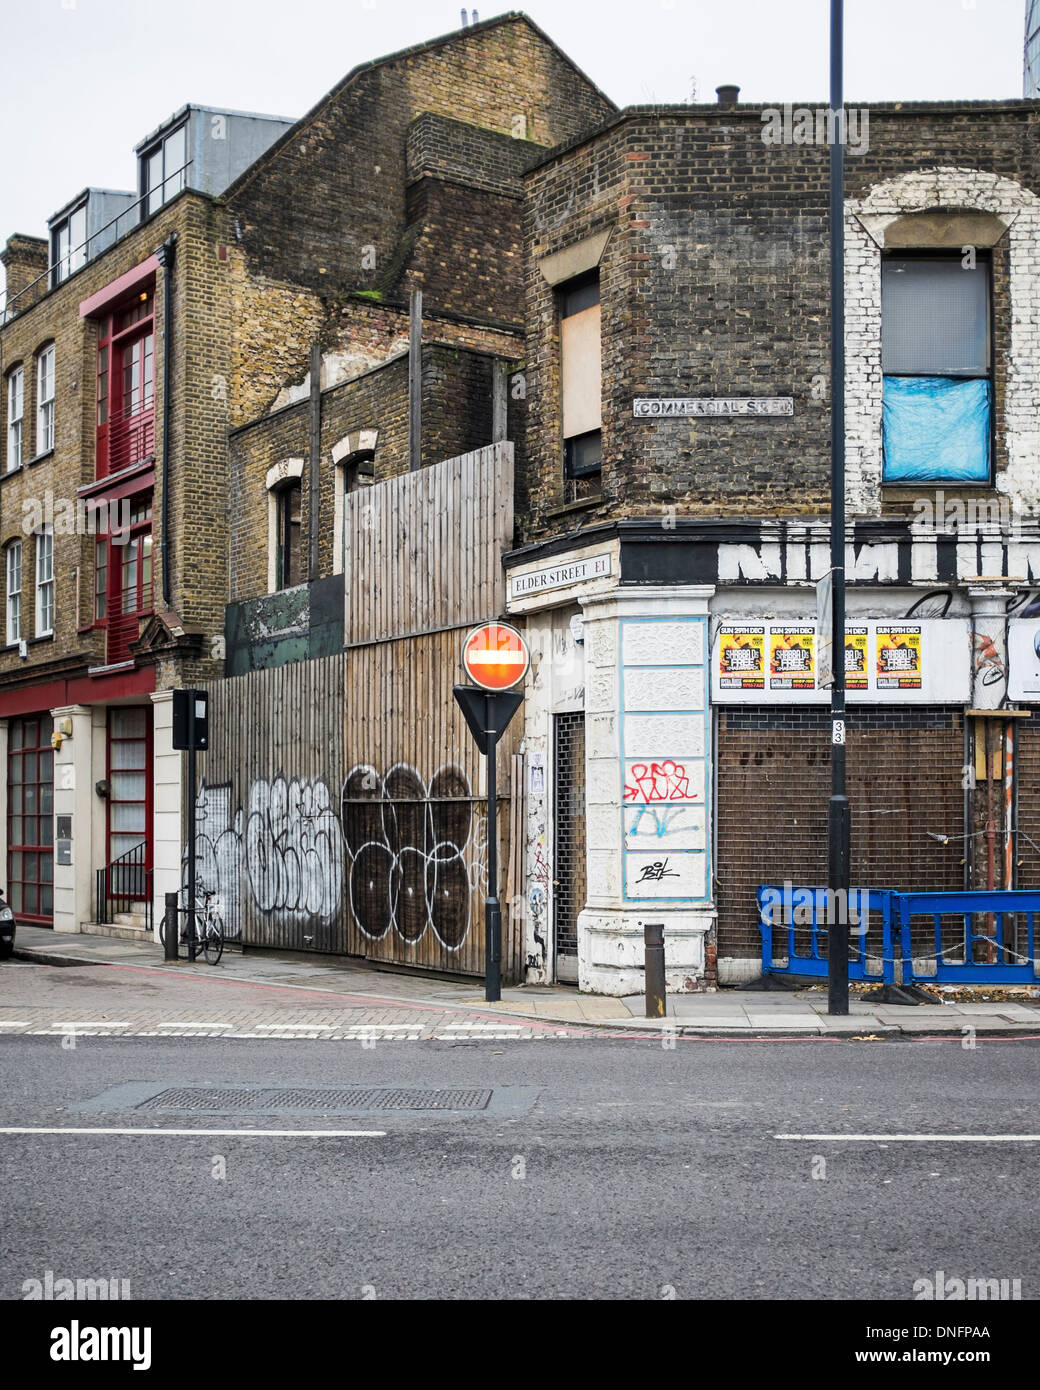 Urban decay - decrepit and broken down old buildings on corner of Elder Street, London E1 - Stock Image